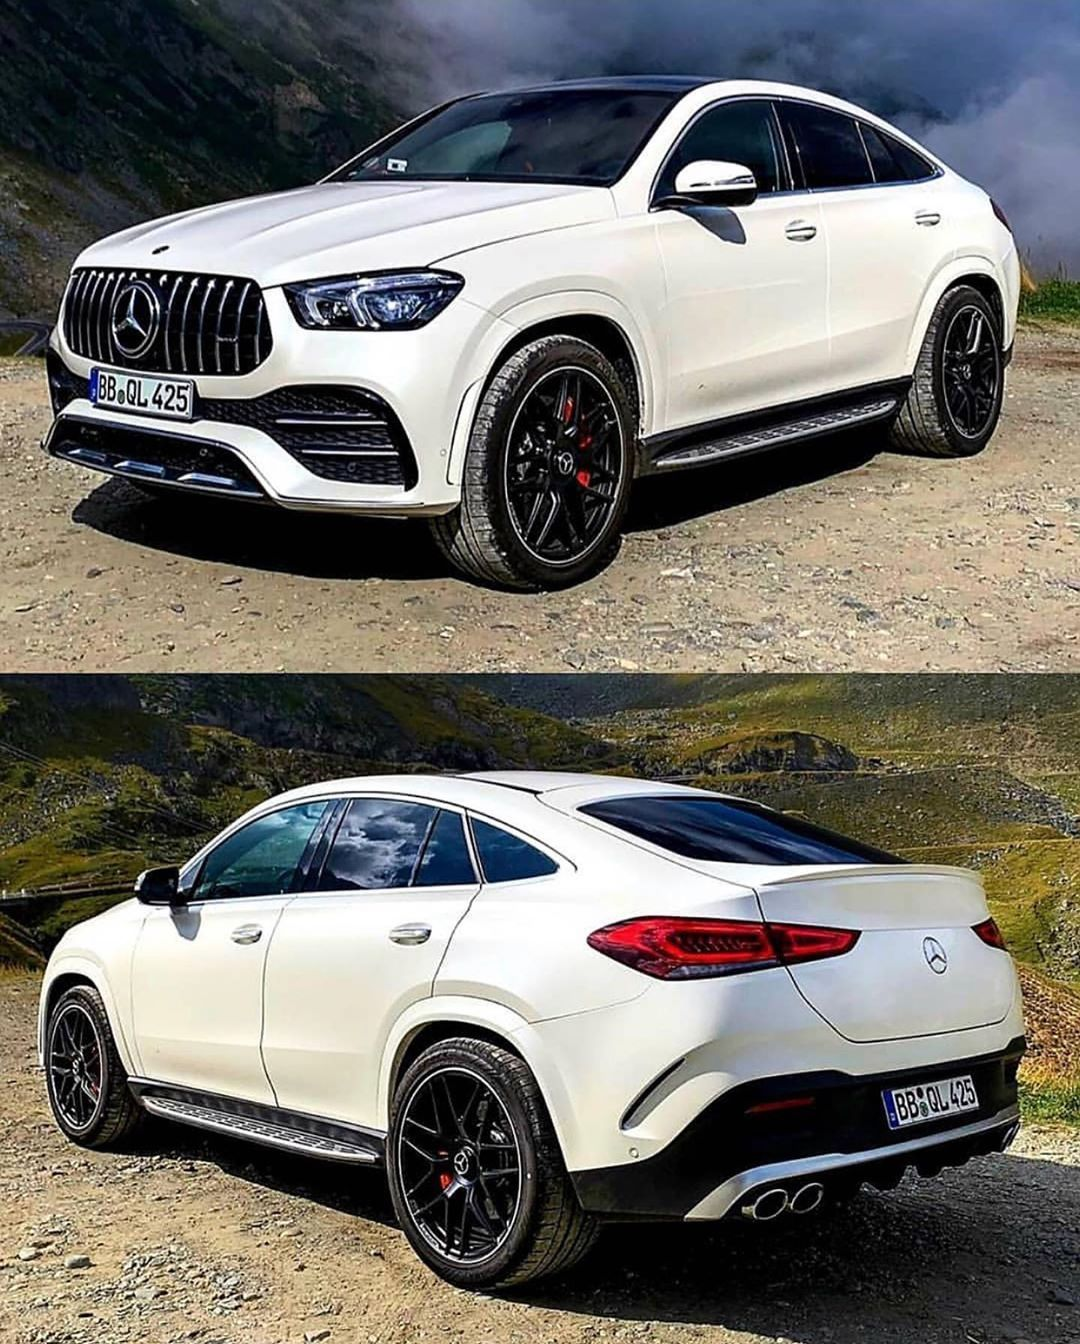 Yeni Mercedes Benz GLE 53 AMG 2020 ... #mercedesamg In